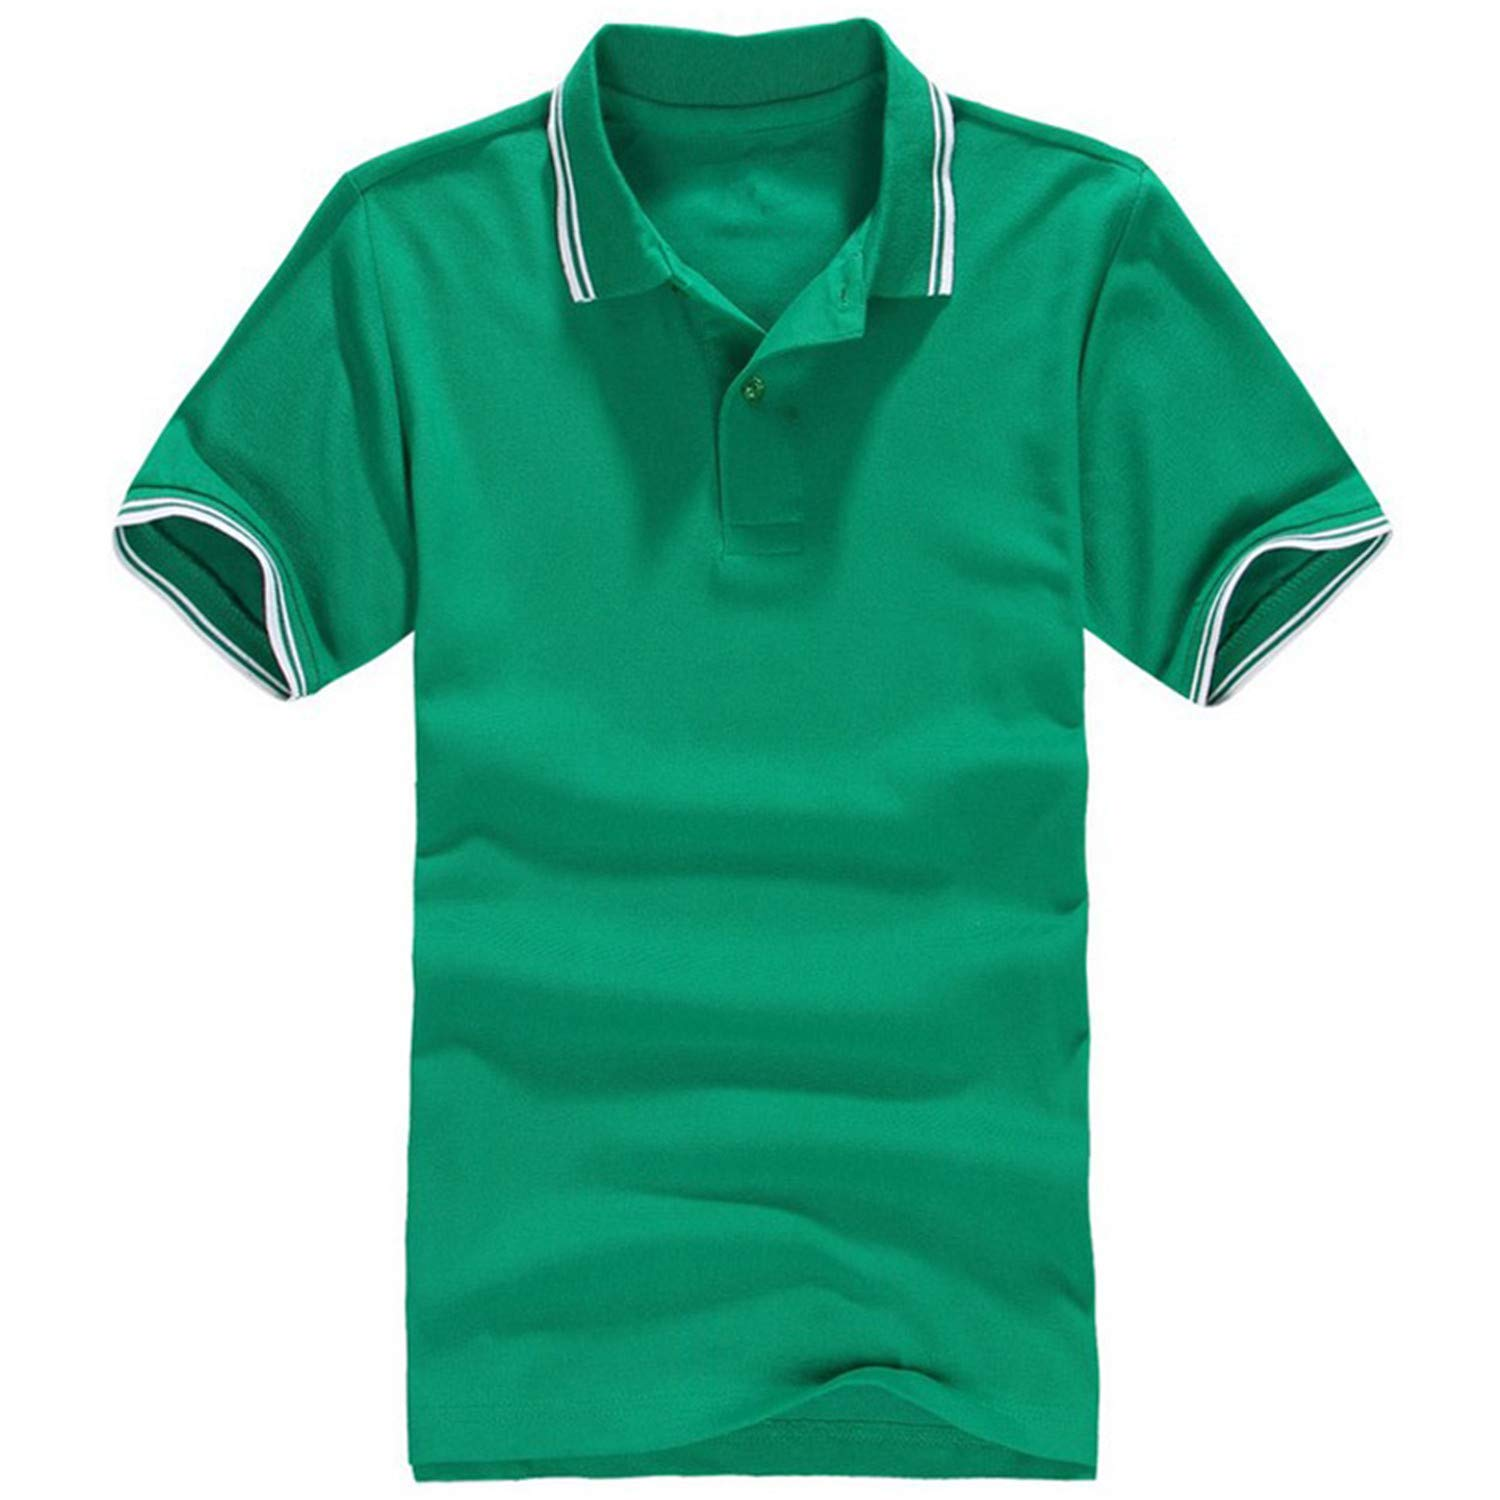 Soybeans Polo Shirt Men Casual Short Sleeve Polo Shirts Big Size 3XL Mens